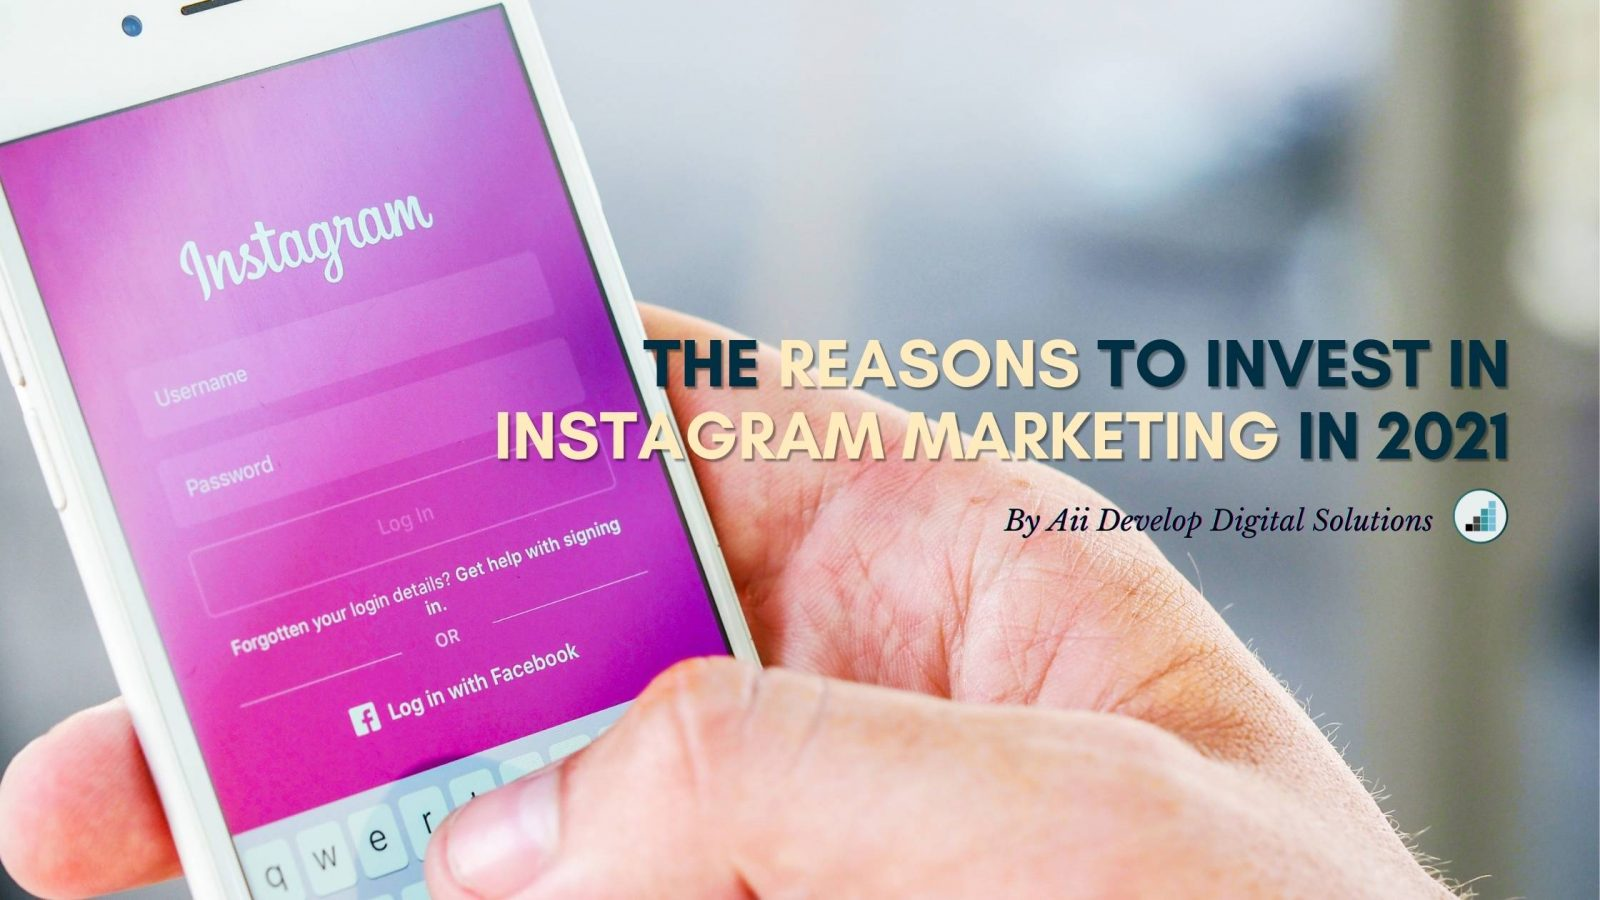 Reasons To Invest In Instagram Marketing In 2021